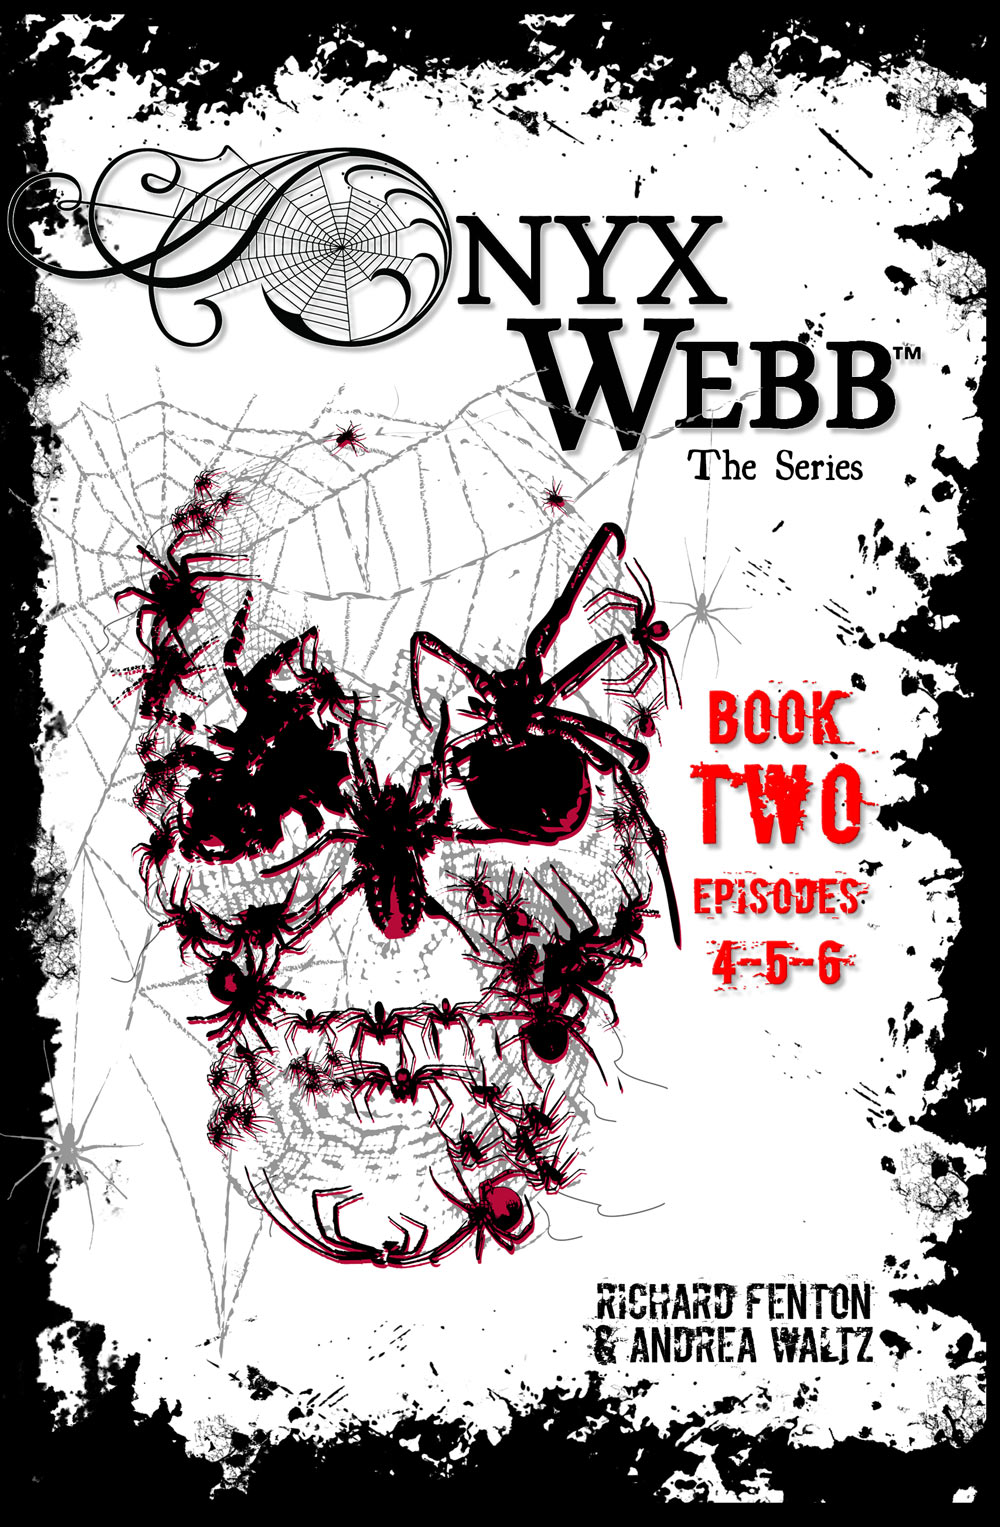 Onyx Webb, Book Two by Andrea Waltz and Richard Fenton